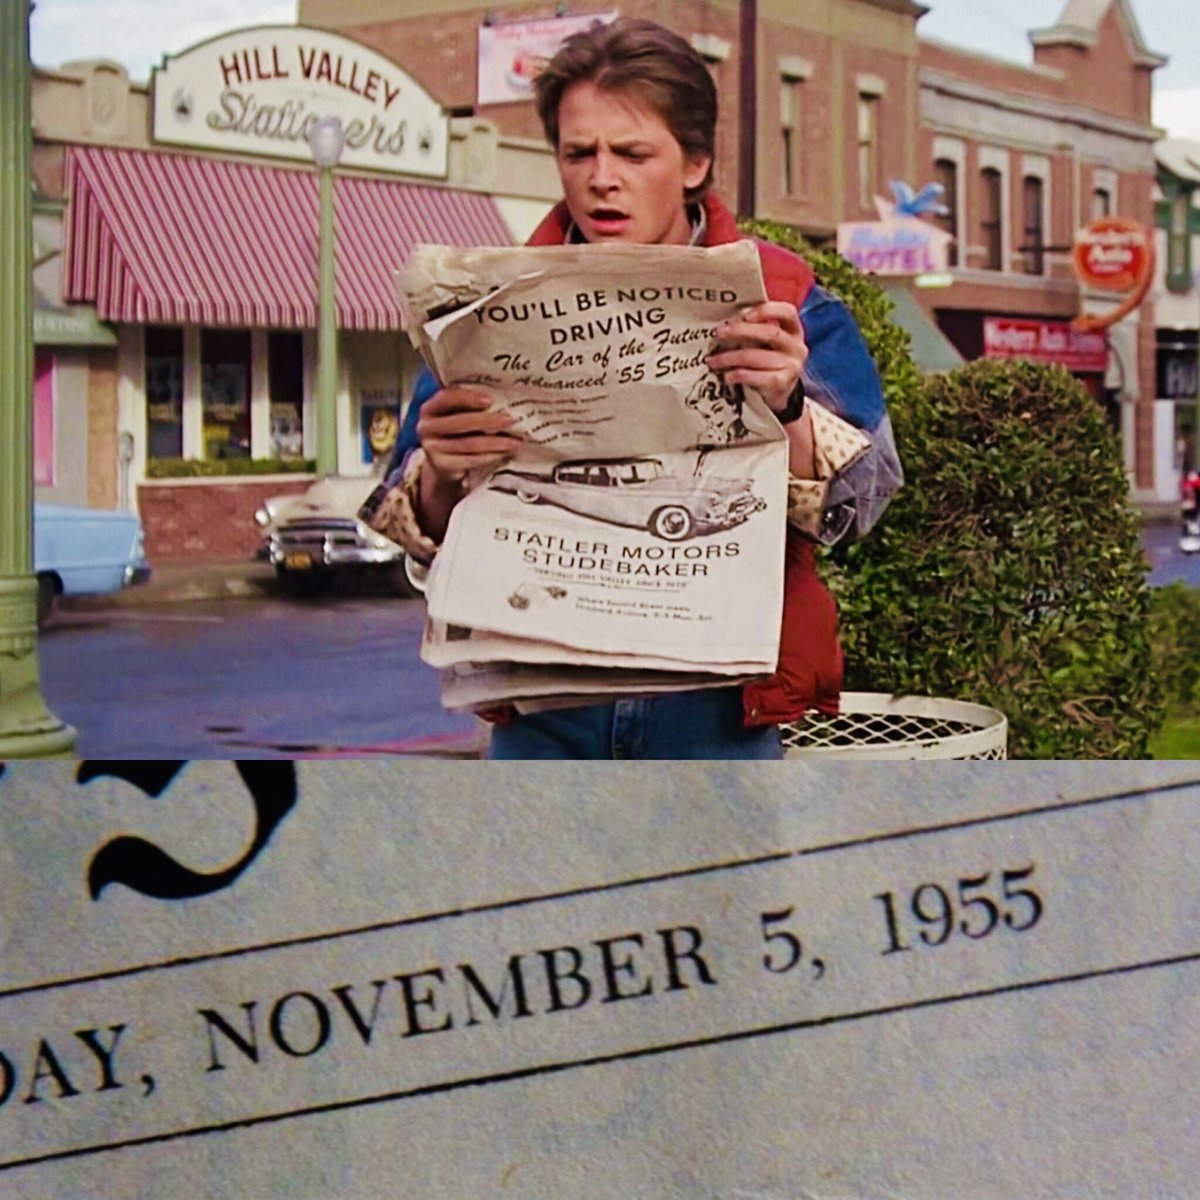 Hill Valley. November 5th, 1955 https://t.co/N3sMgKny9P